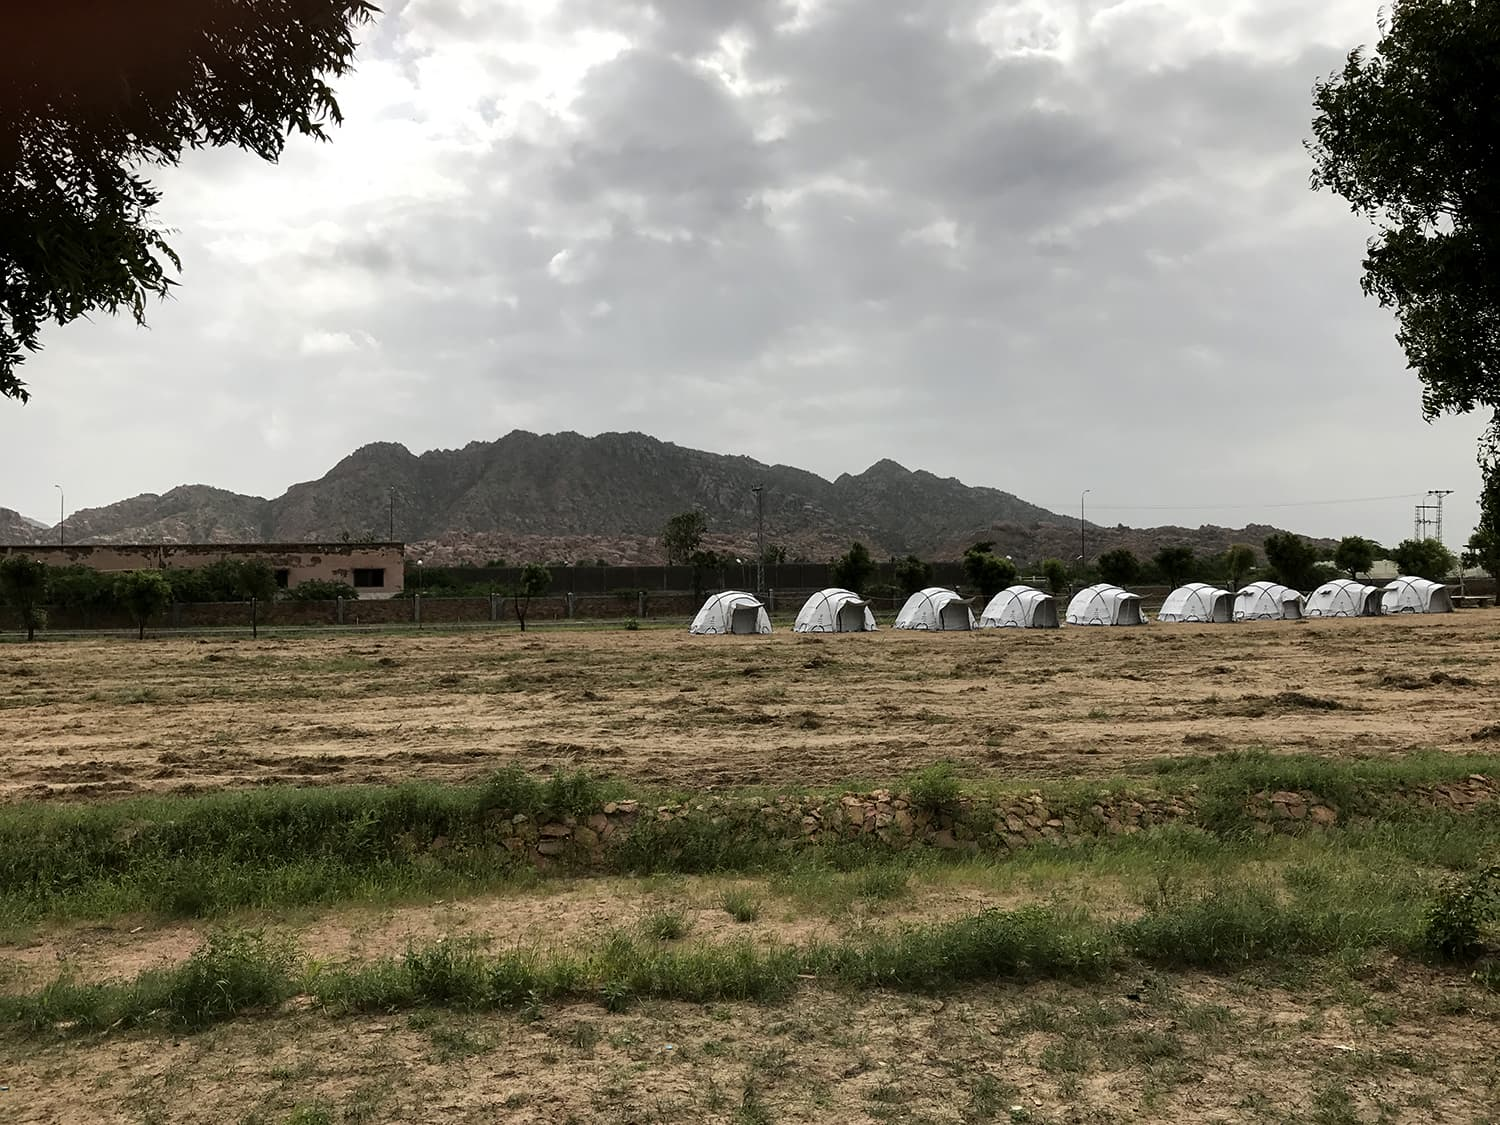 A shot of the Karoonjhar ranges, from the Thardeep Rural Development Programme huts. Both solar-powered huts and camping tents (as seen here) are available on rent just outside Nagarparkar city.